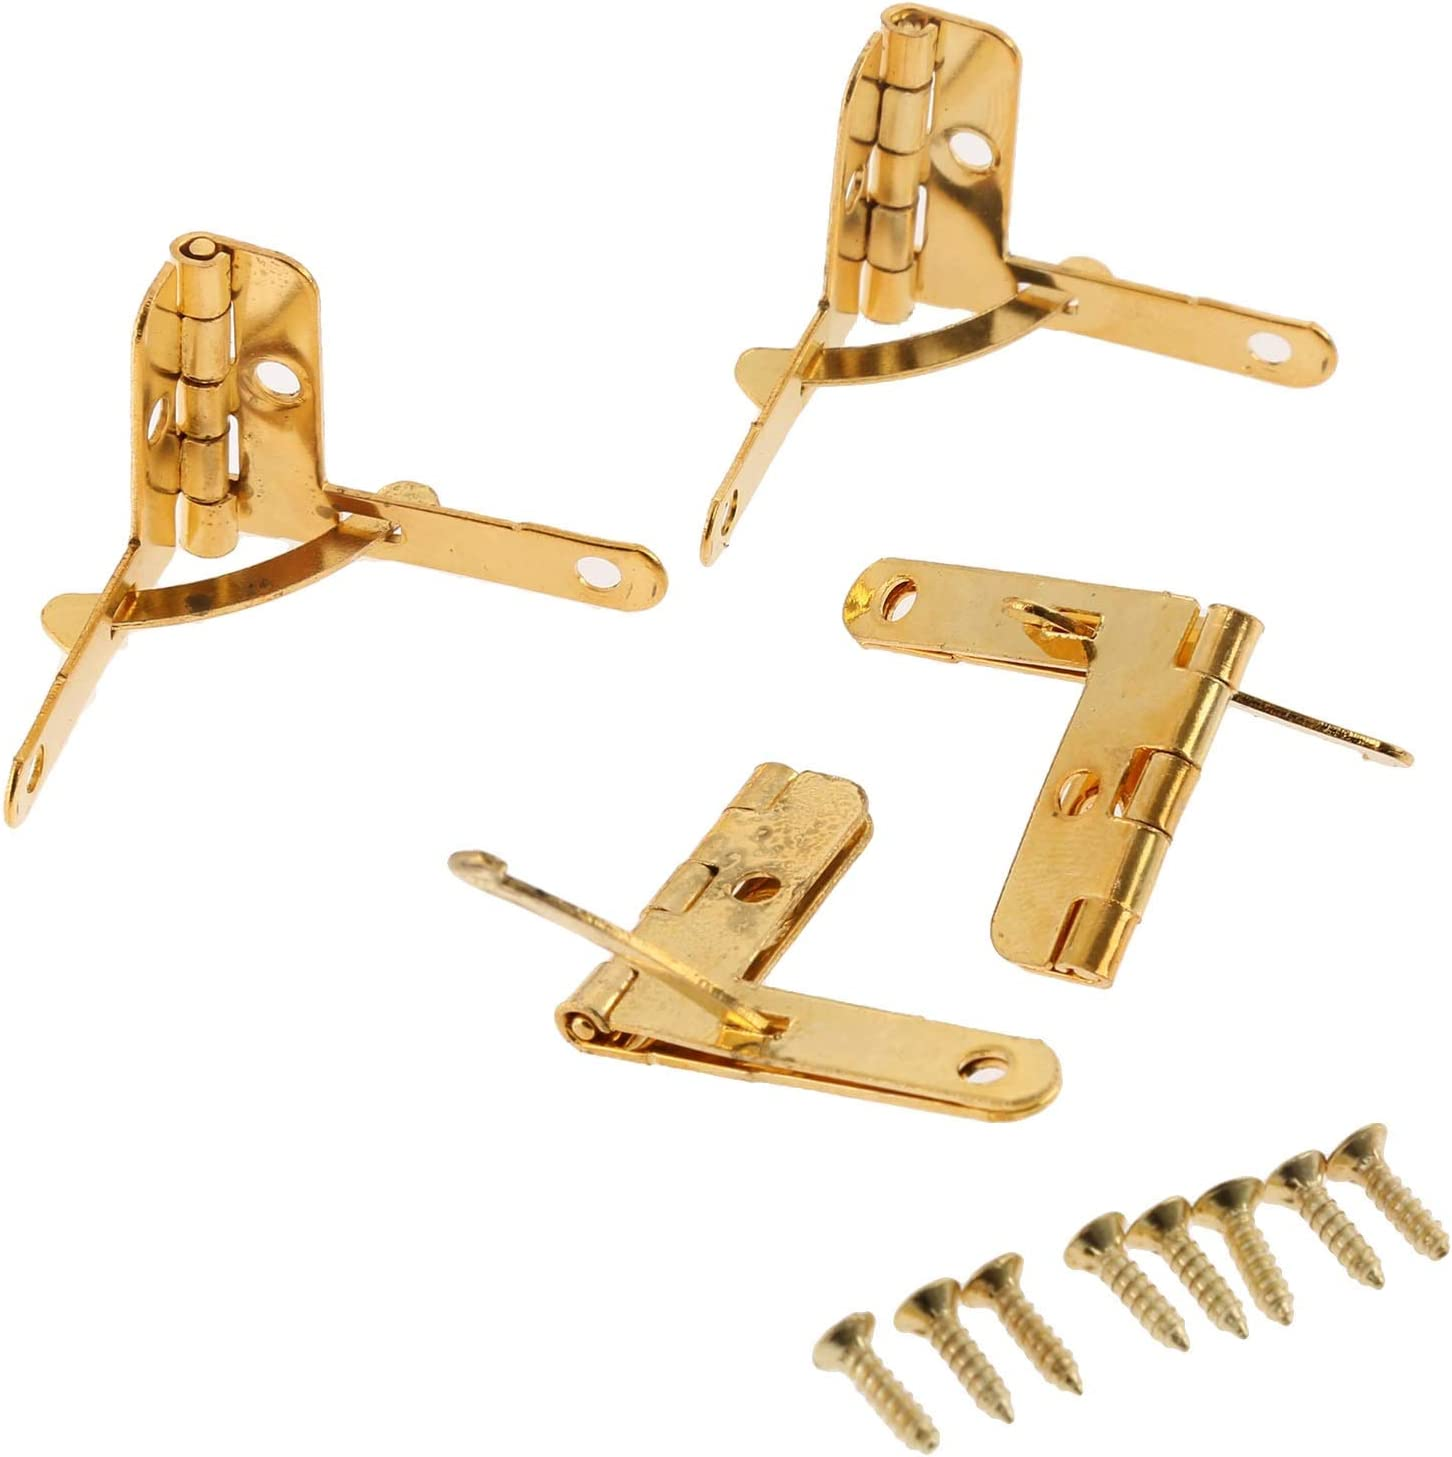 Spring new work 4Pcs 2822mm Antique Furniture Door 90 Support Angle Degree Milwaukee Mall Hinge